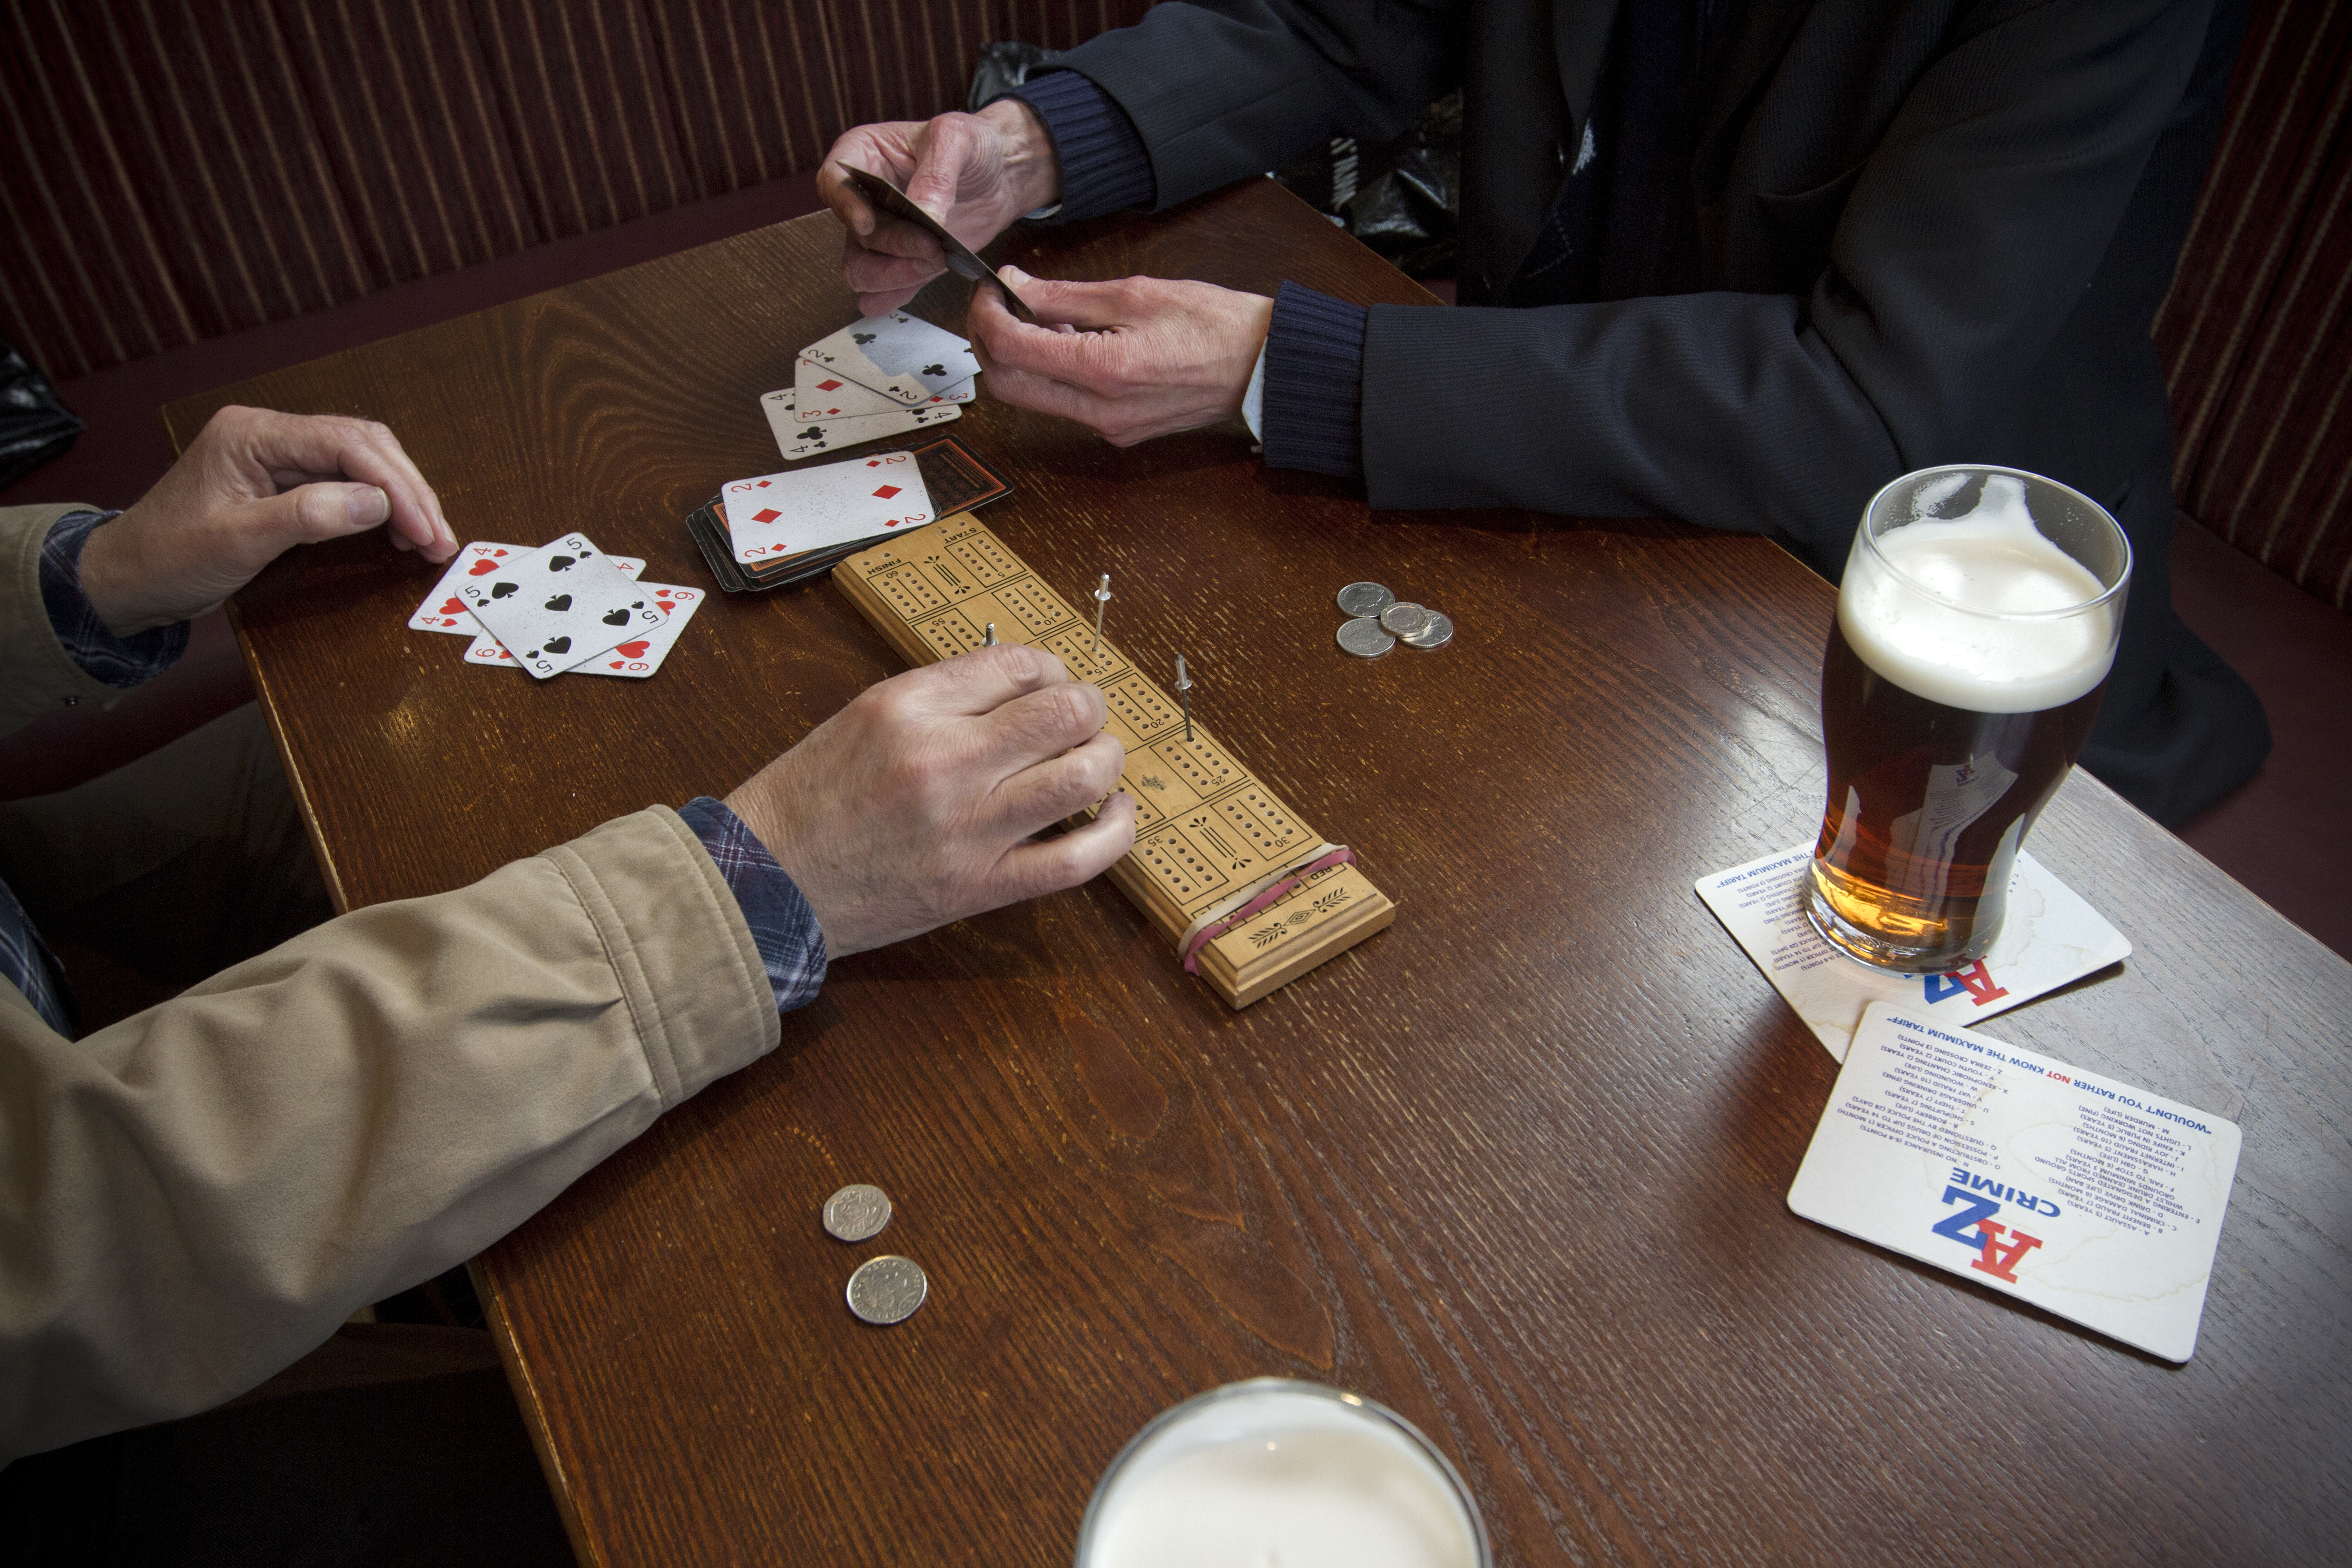 Regulars playing cribbage at the Mowbray in Failsworth, Oldham, Greater Manchester. The pub is owned by Amber Taverns, who reopened in four years ago after the building was previously a public house but had been vacant for a number of years.